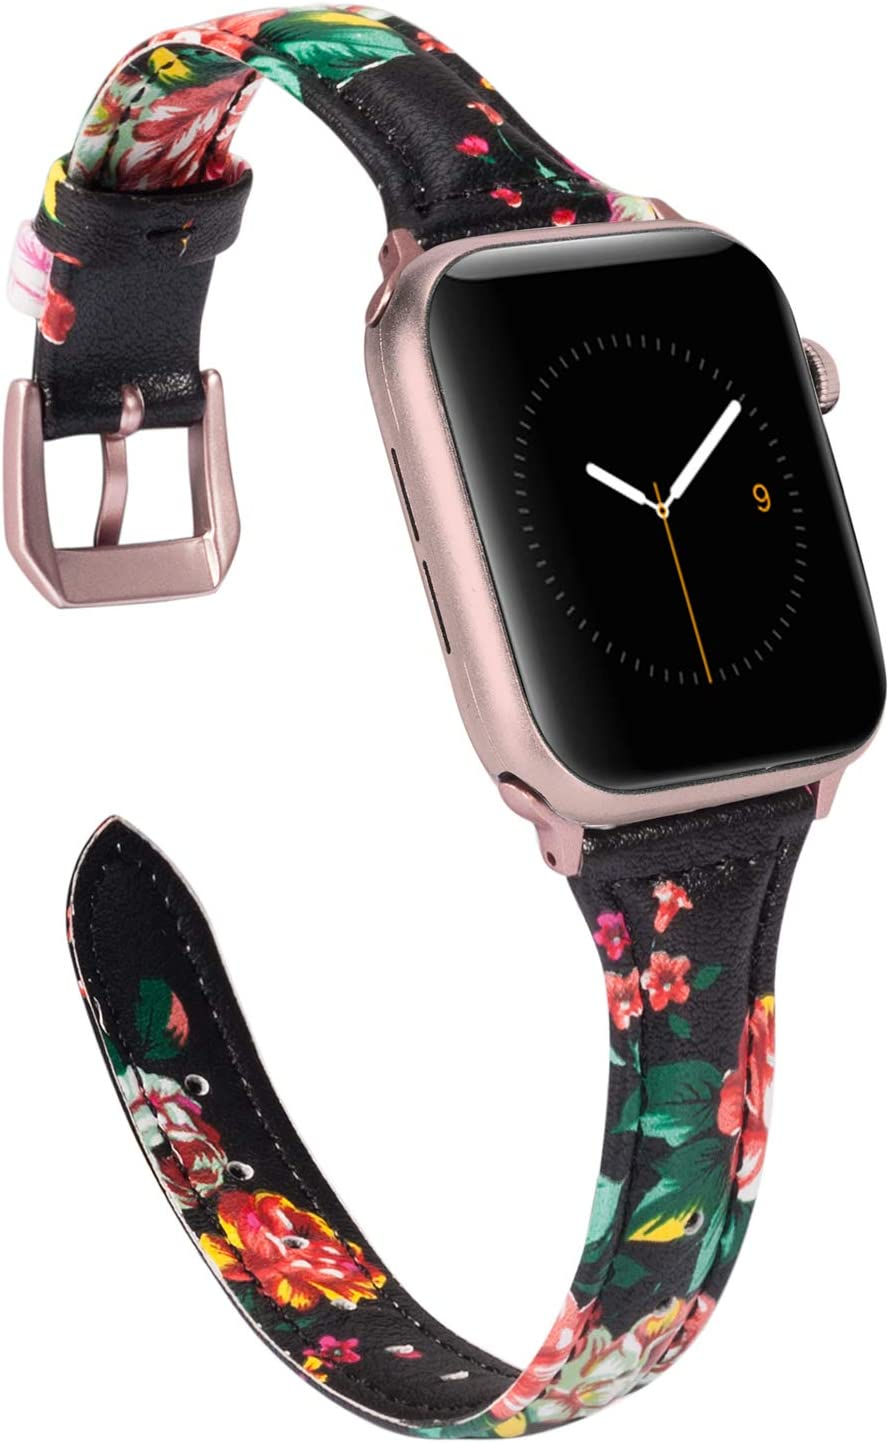 Wearlizer Slim Floral Leather Compatible with Apple Watch Band 38mm 40mm for iWatch SE Womens Black Red Flower Strap Replacement Beauty Cute Wristband (Rose Gold Clasp) Series 6 5 4 3 2 1 Sport